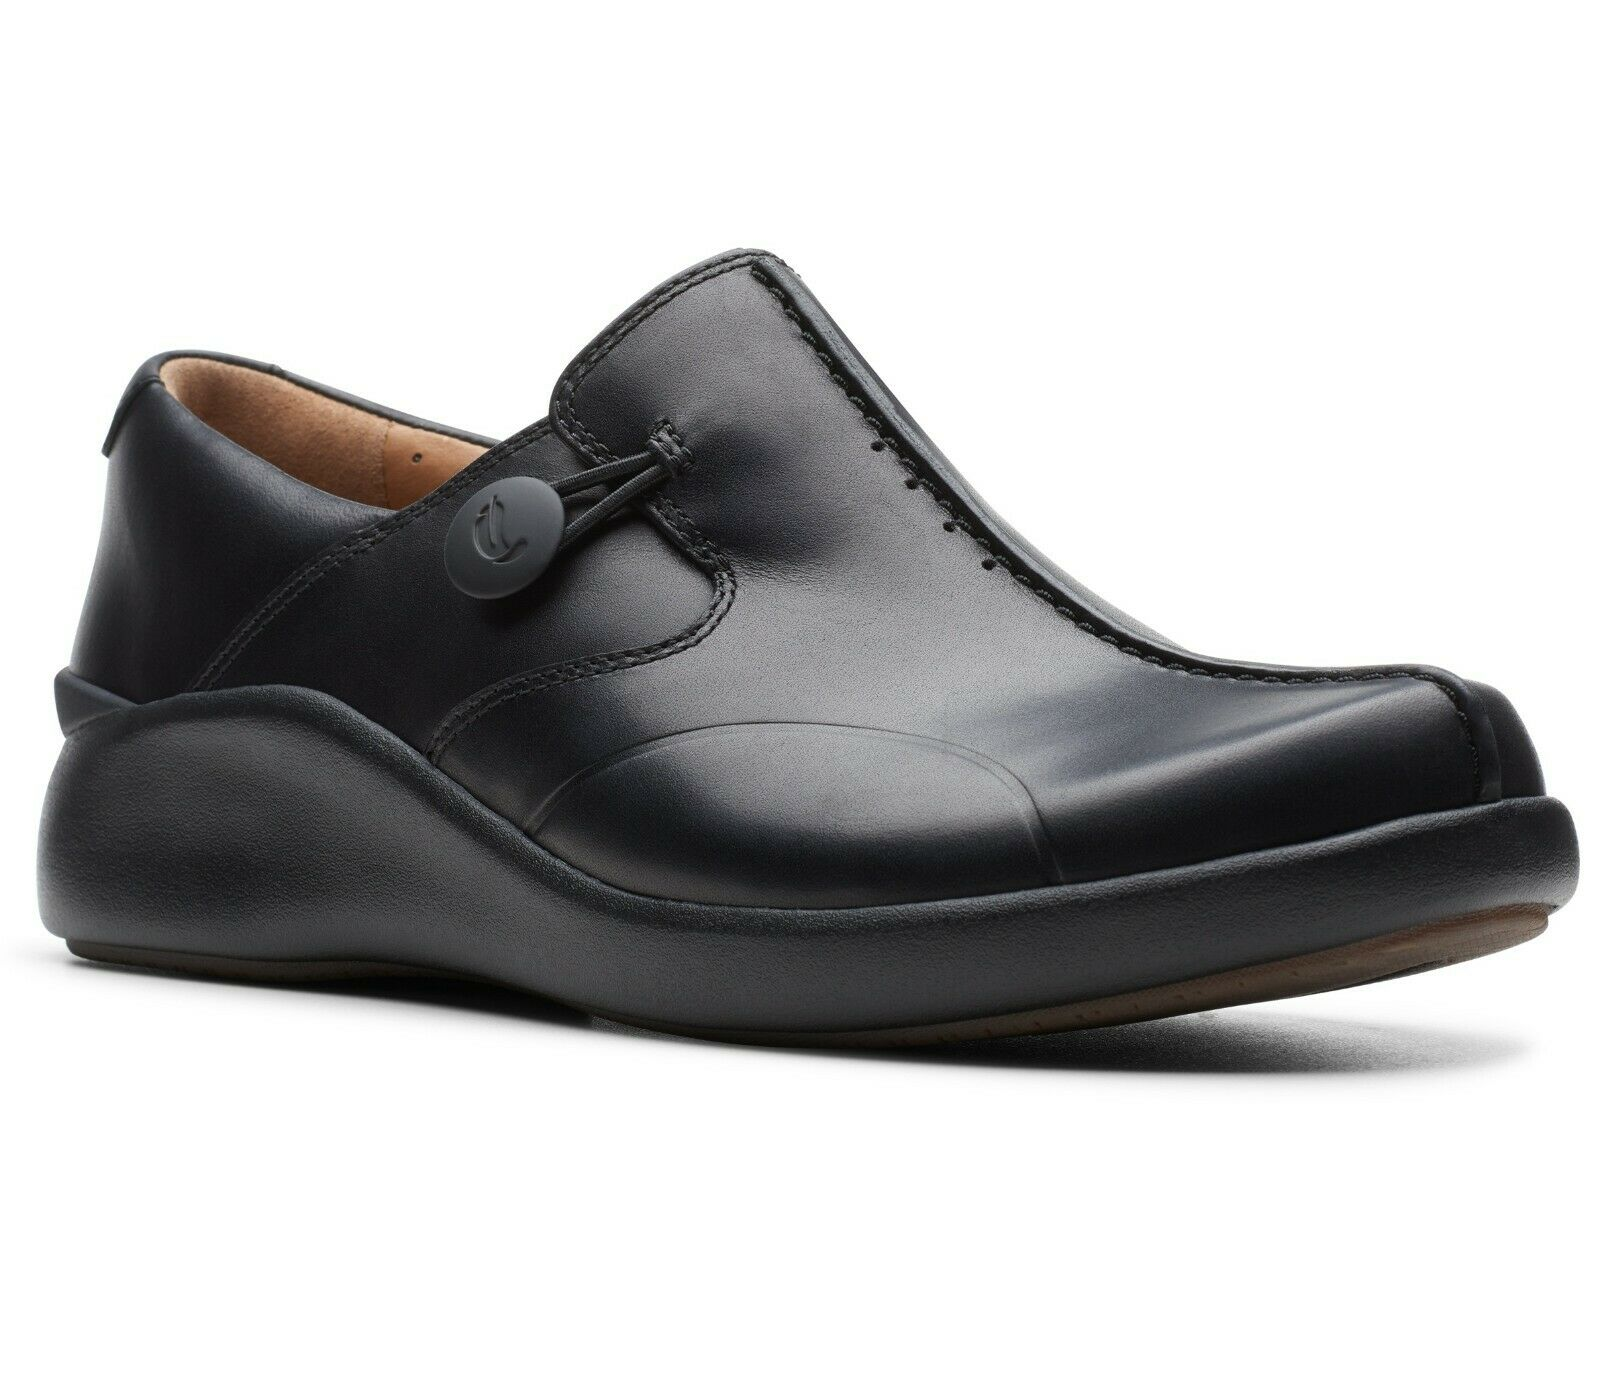 Clarks Unstructured Women Slip On Shoes